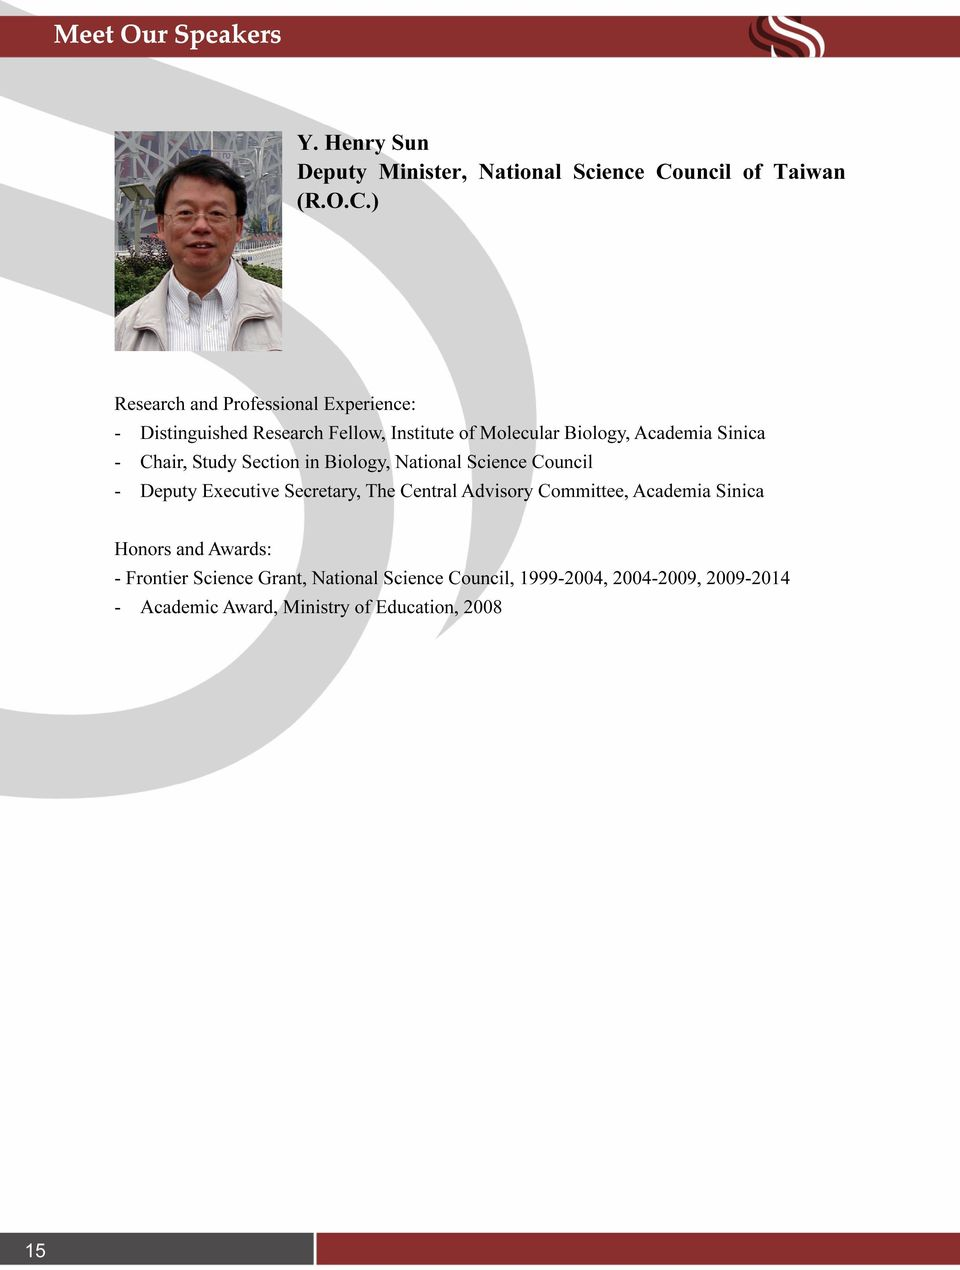 ) Research and Professional Experience: - Distinguished Research Fellow, Institute of Molecular Biology, Academia Sinica -